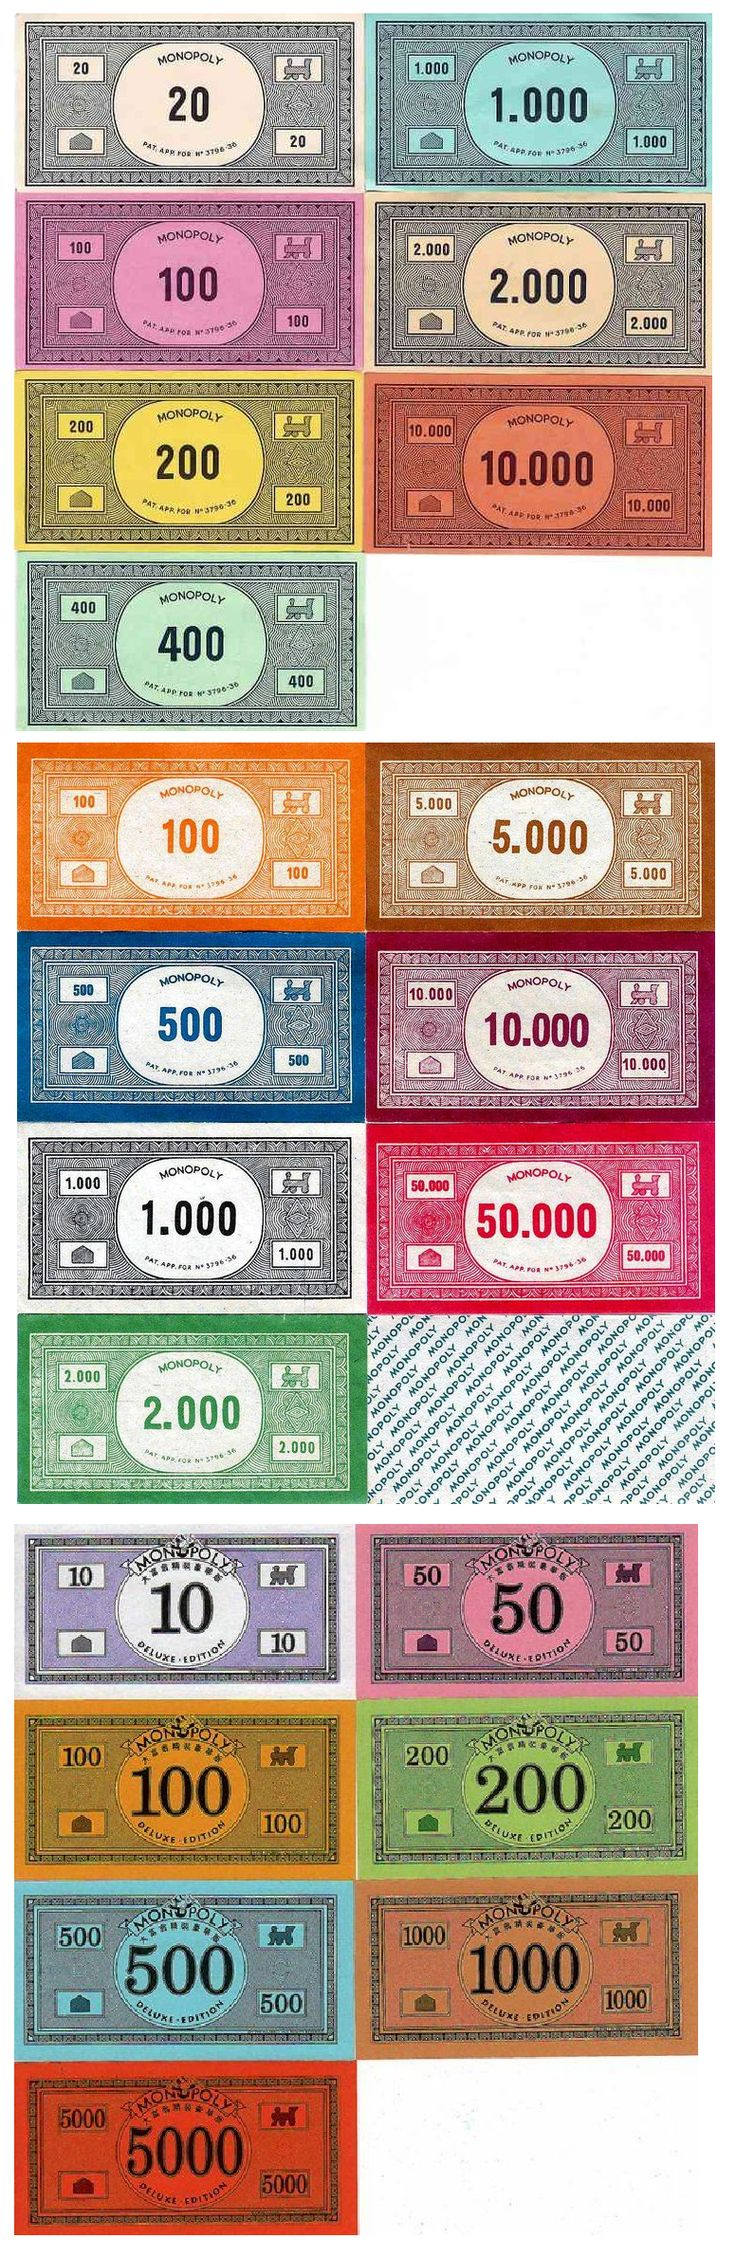 Printable Monopoly money